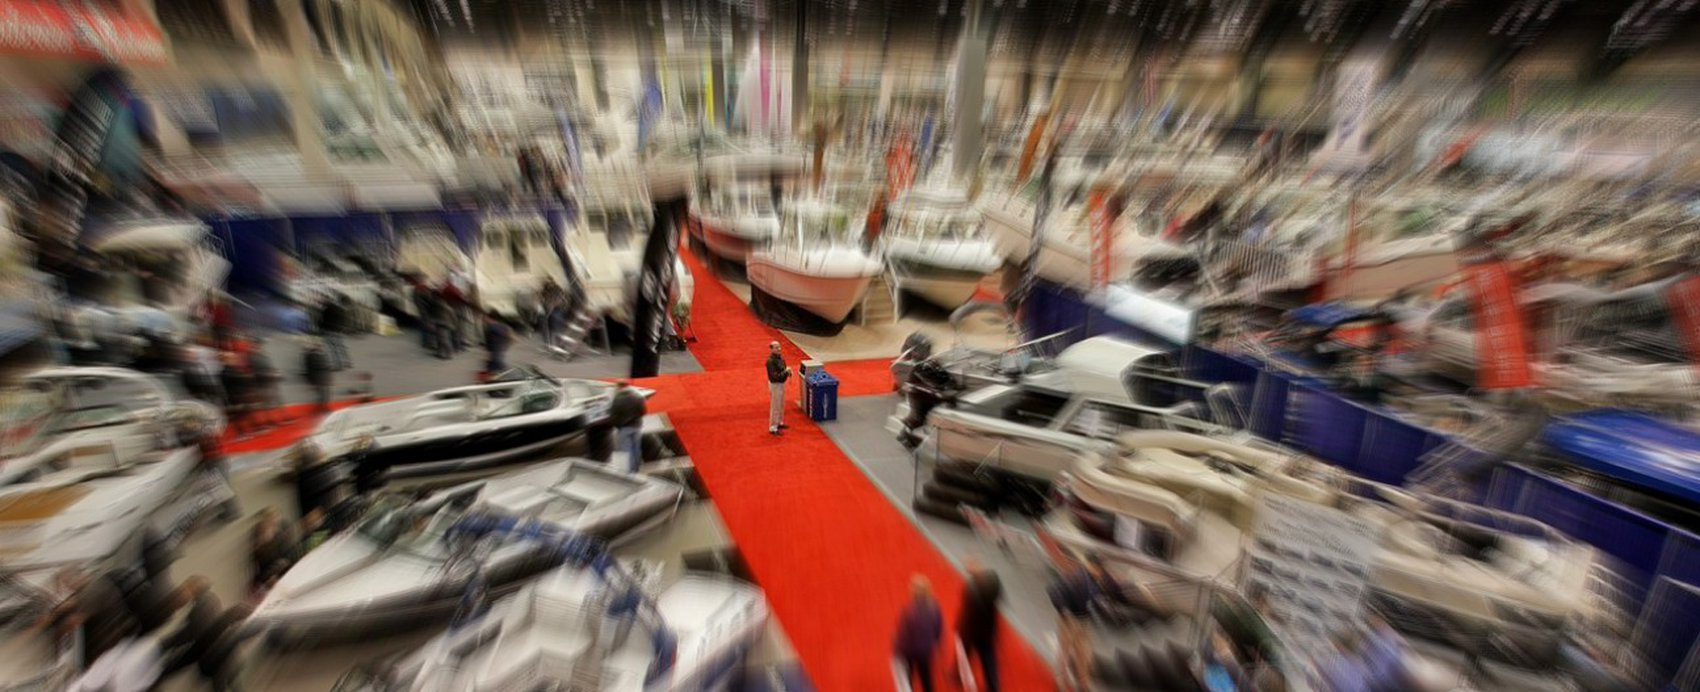 Mercury Dockline | How to Get the Best Deal at a Boat Show